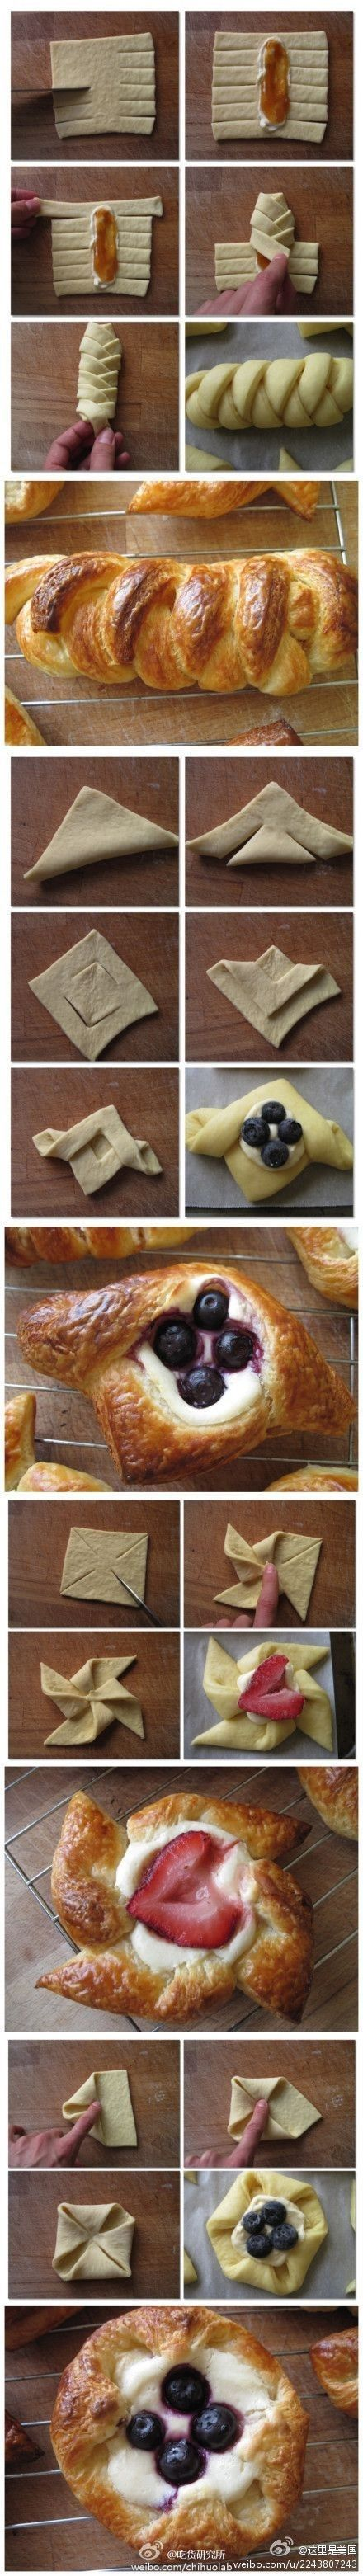 Awesome Pastry Folding